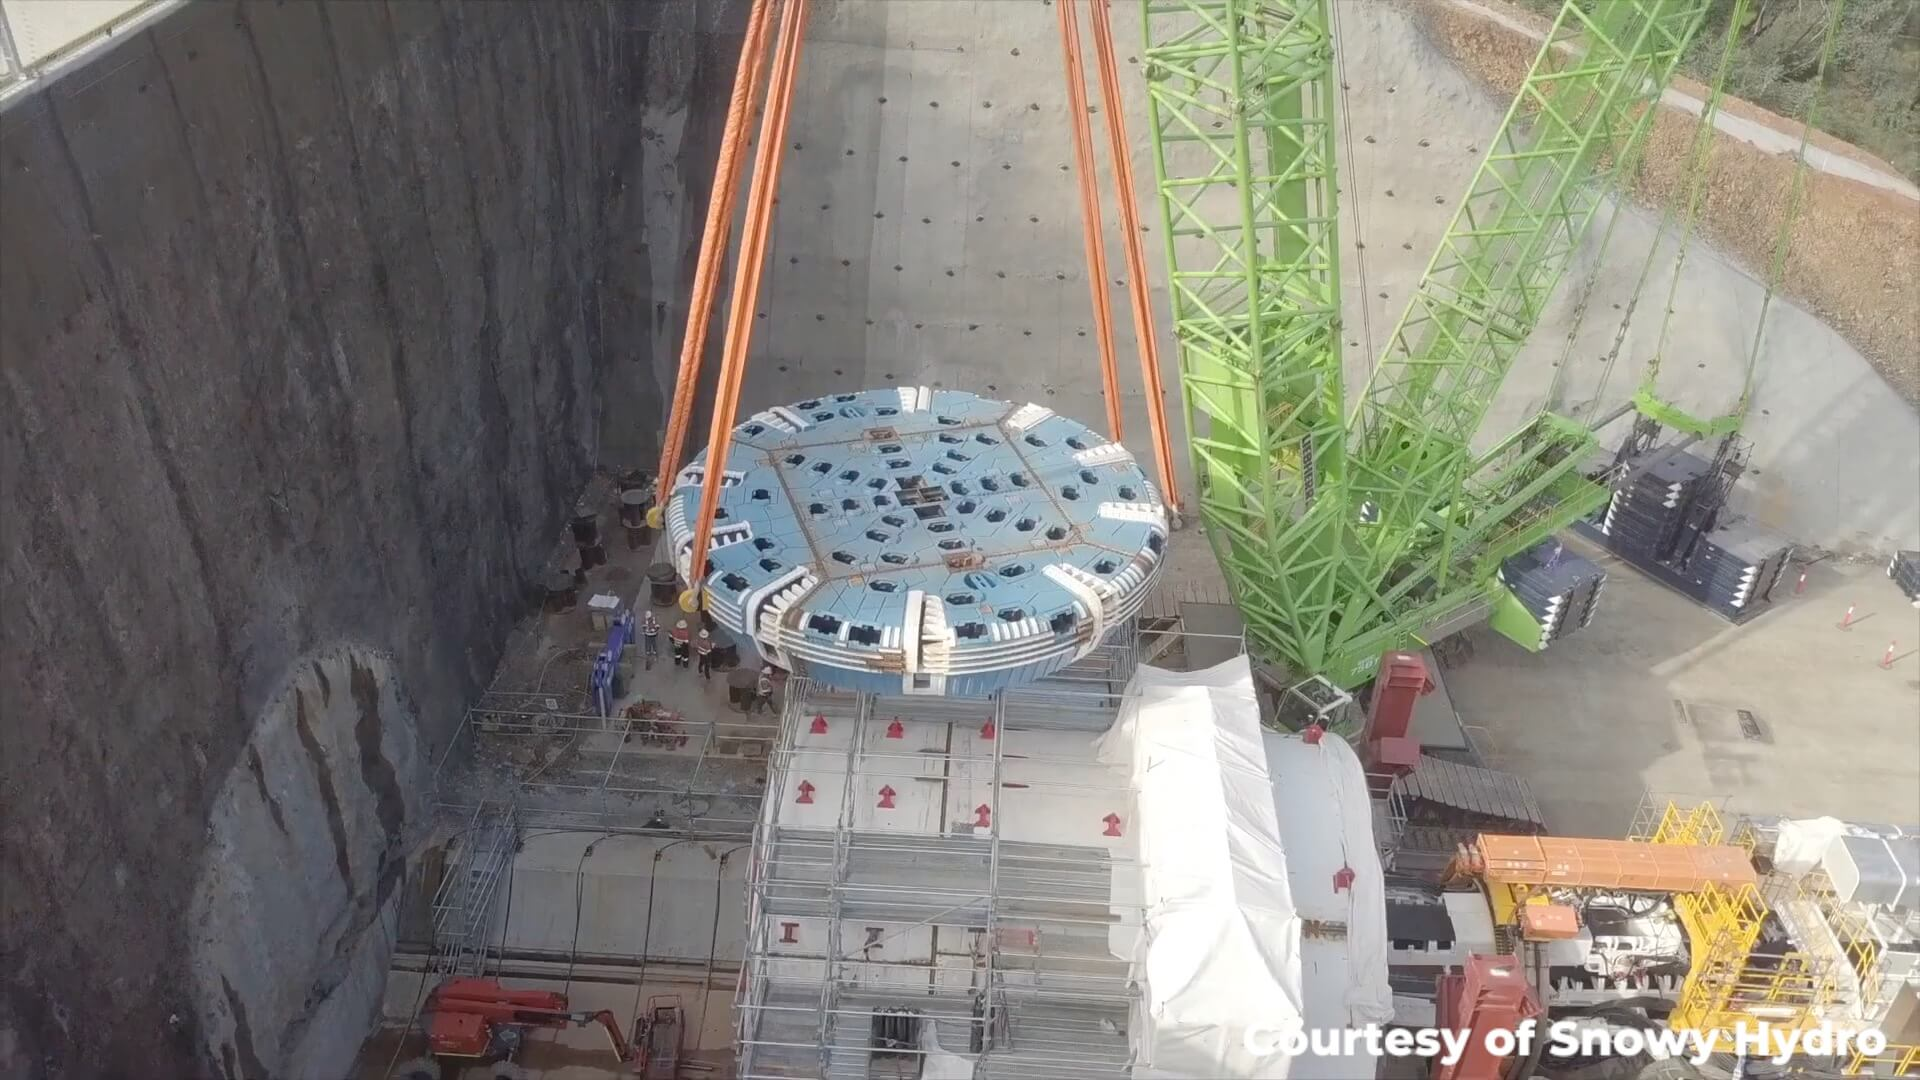 The First Snowy Hydro 2.0 TBM Prepares for Launch